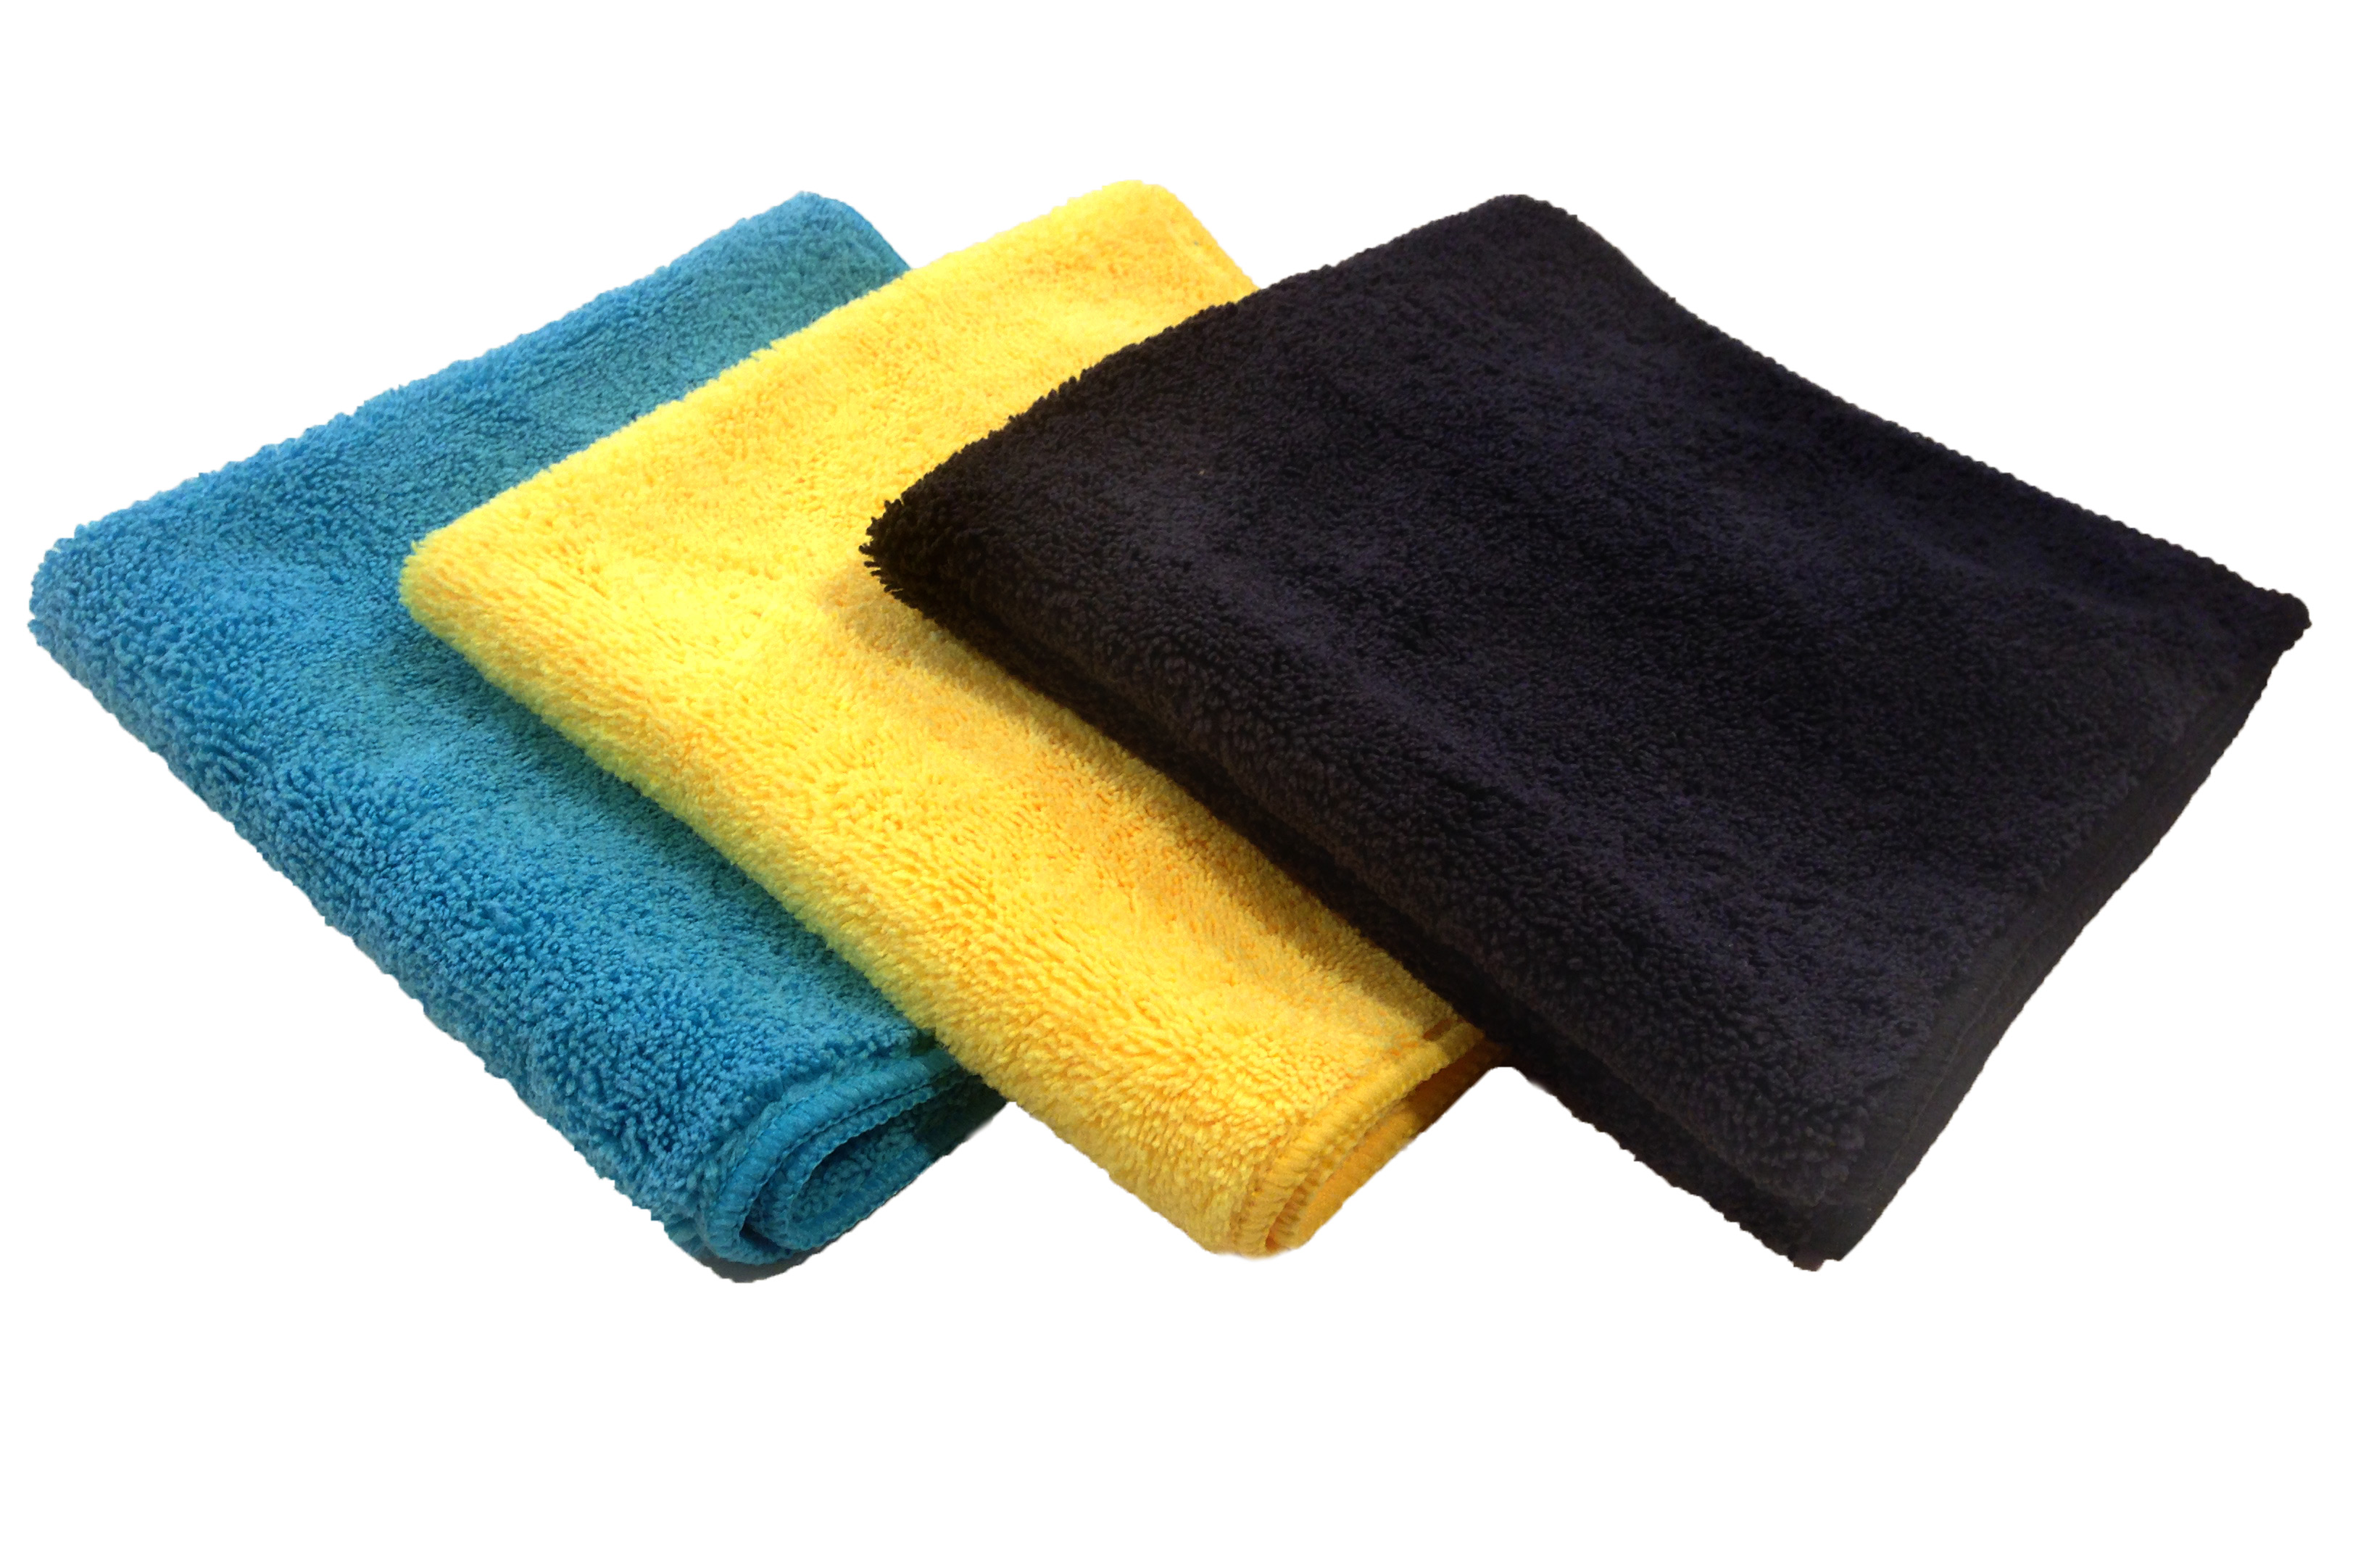 The Benefits Of Cleaning With Microfiber | Use of Microfiber